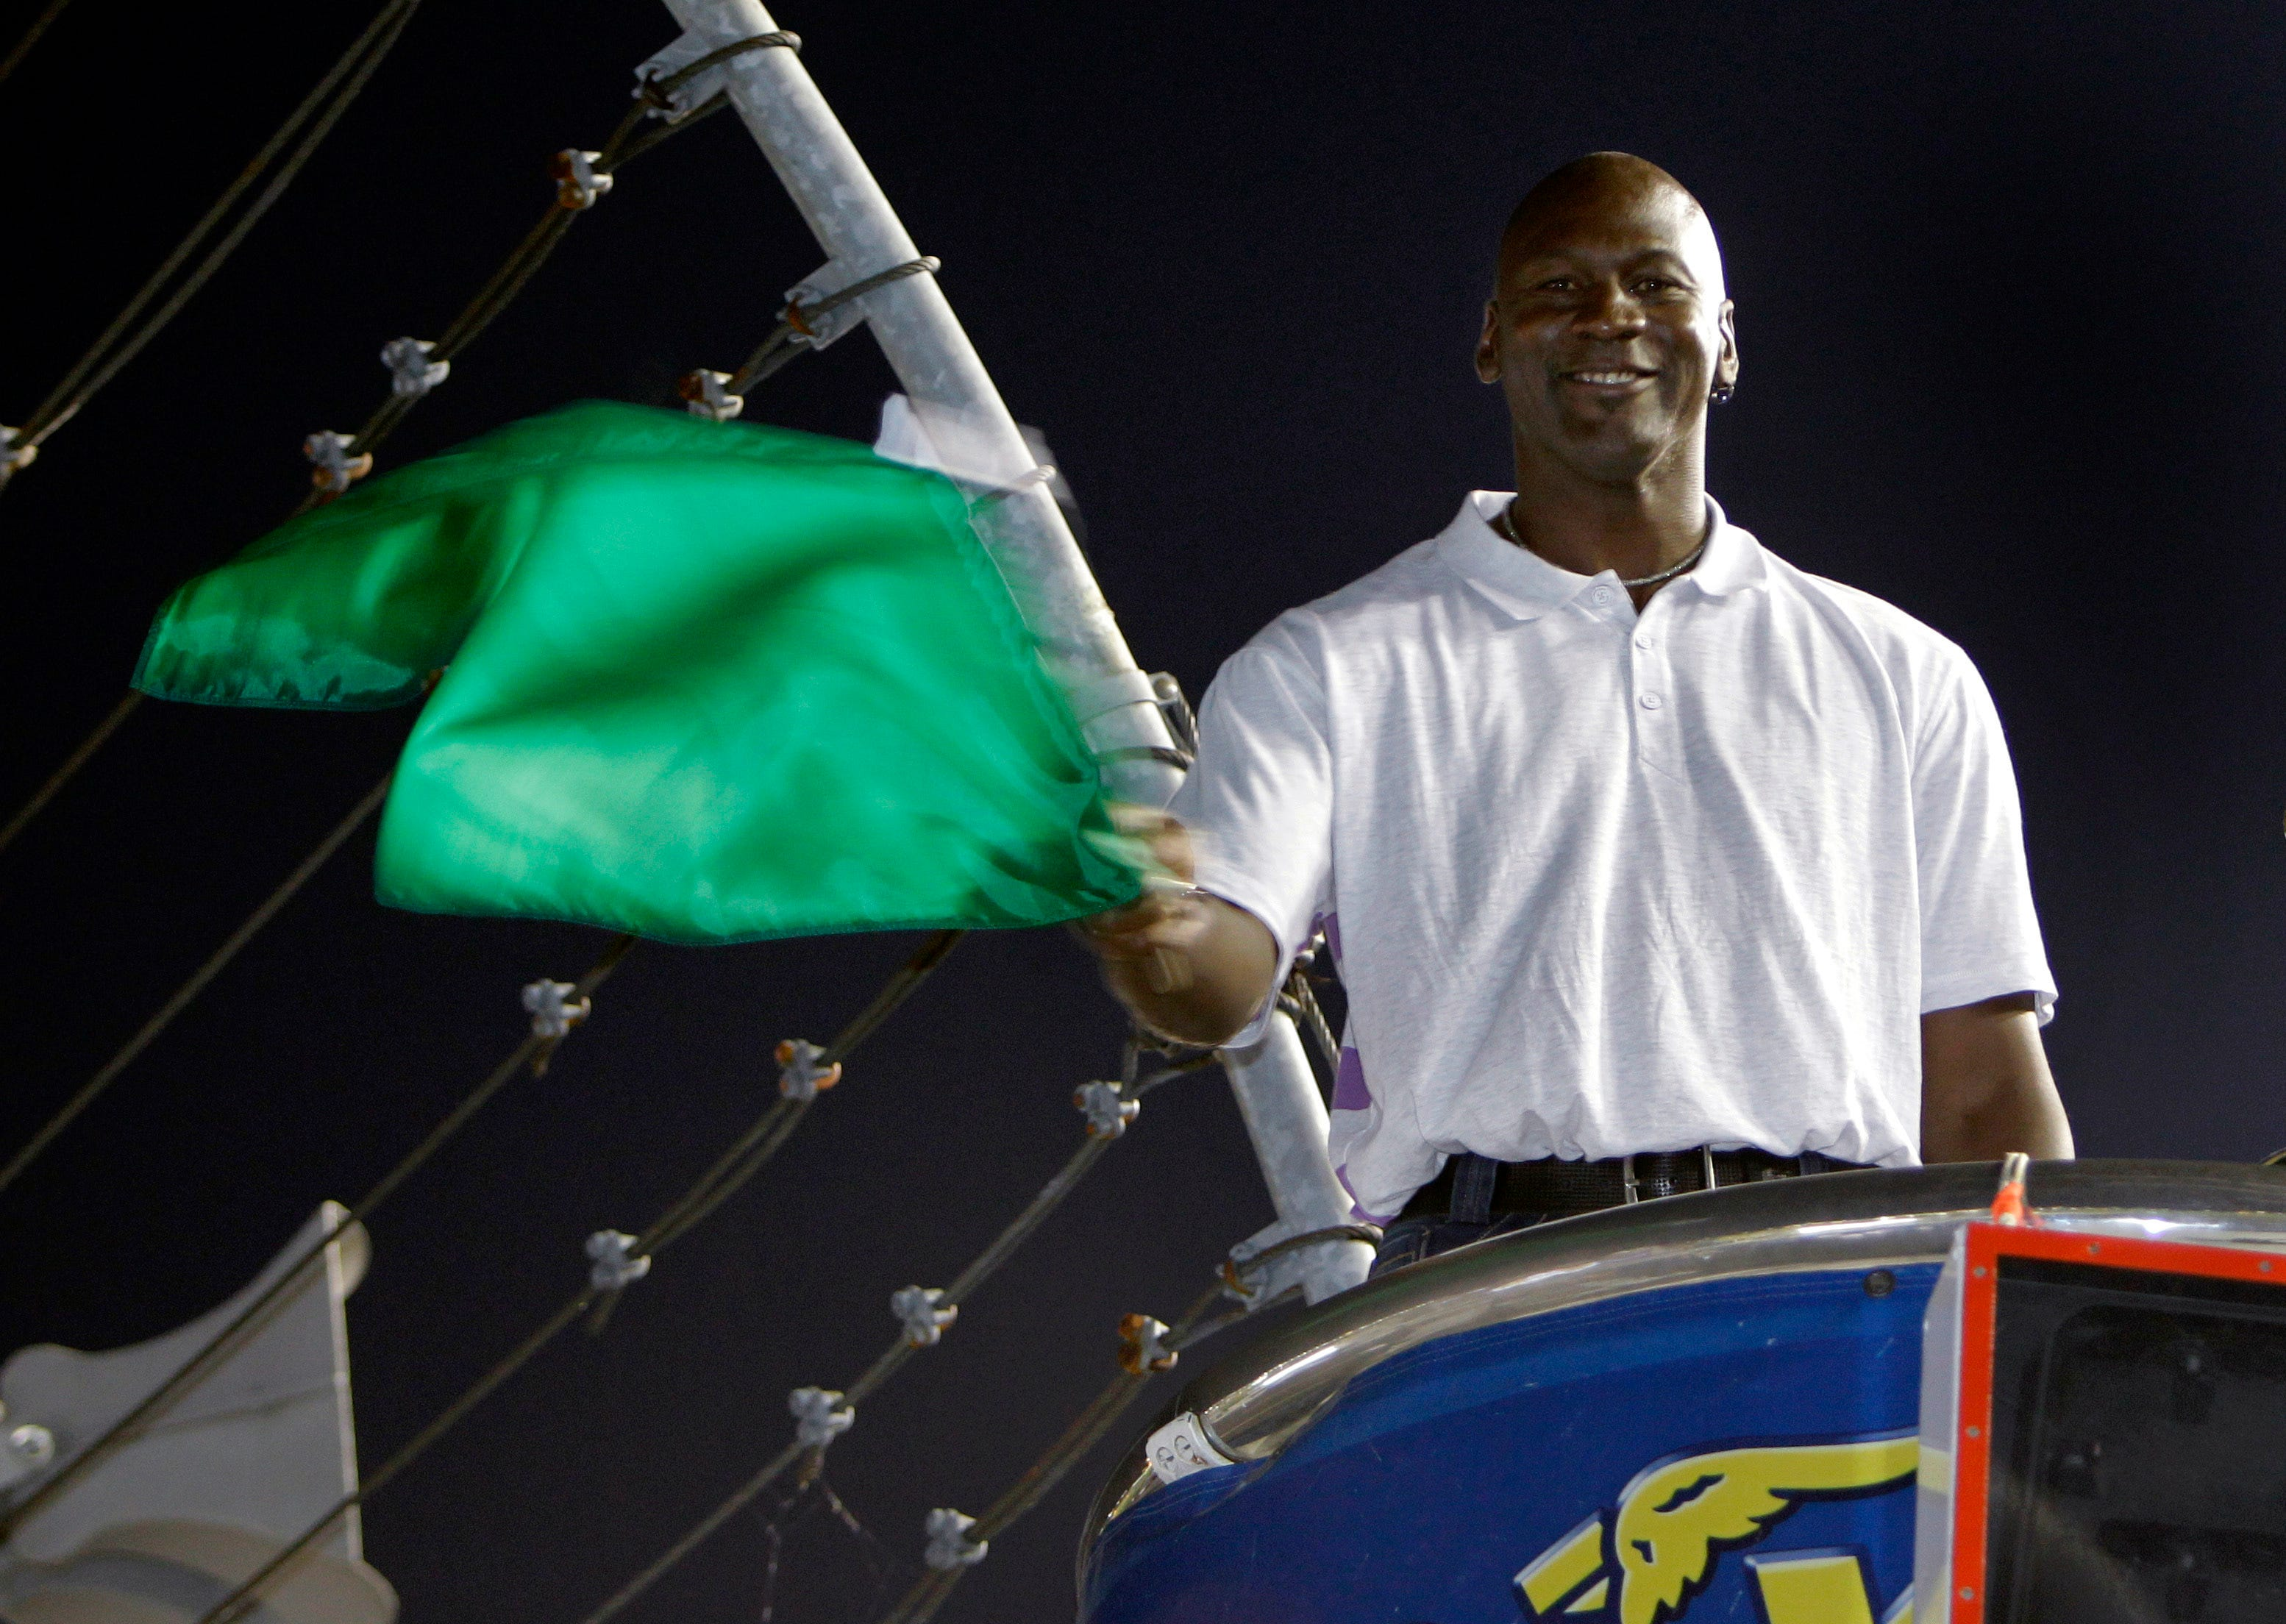 Michael Jordan dubs Bubba Wallace the first driver of his new NASCAR team